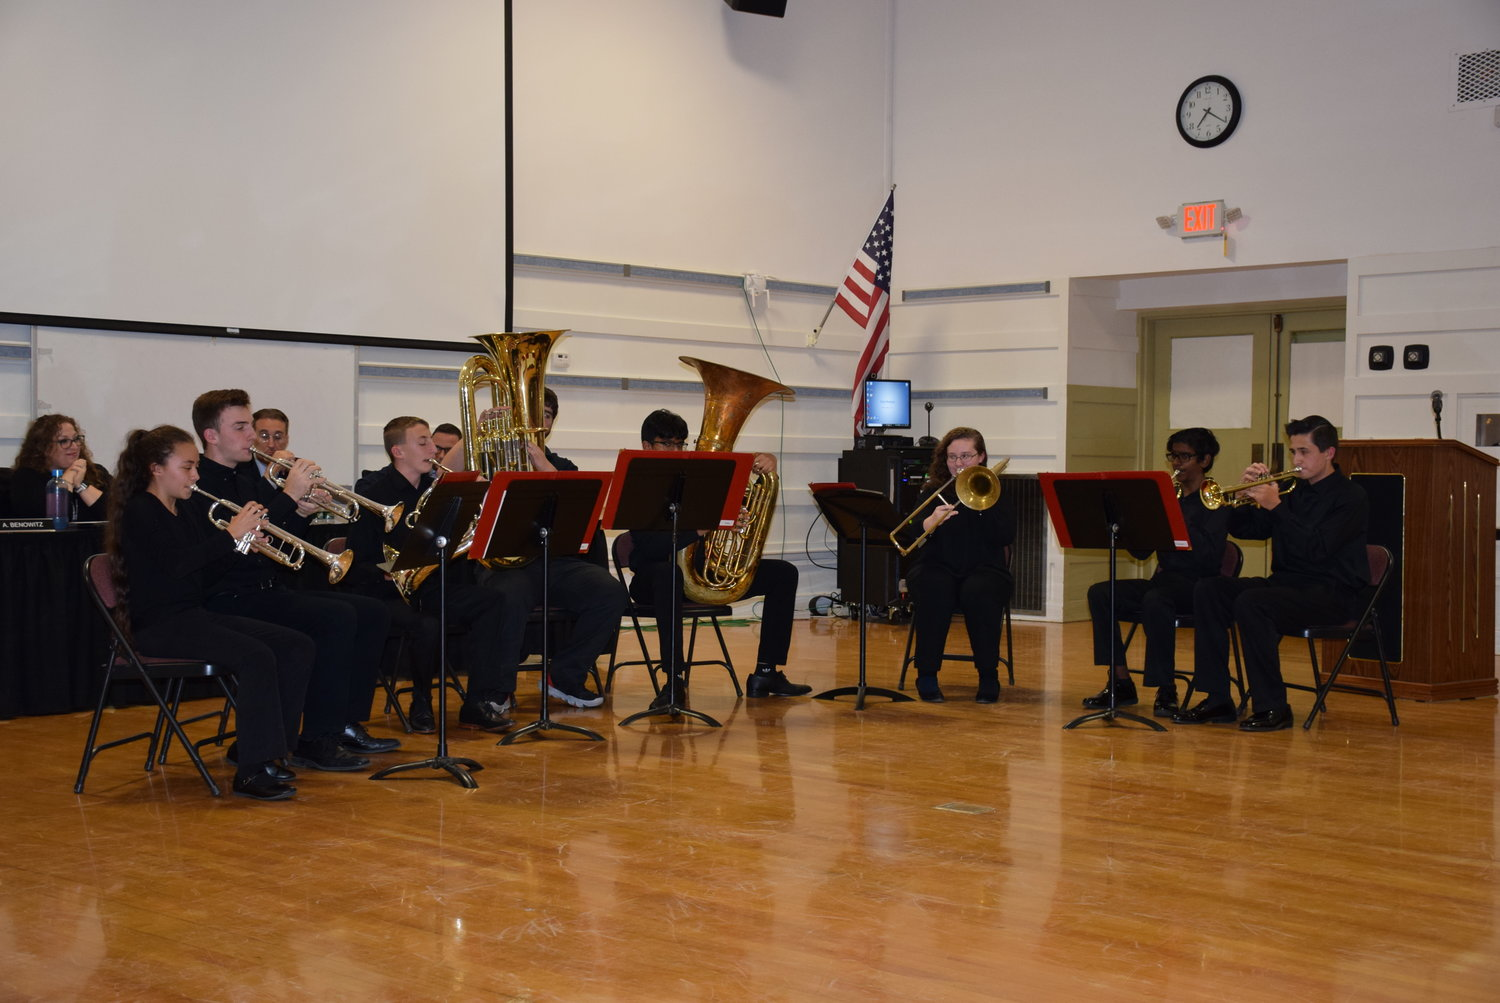 The East Meadow High School Brass Ensemble performed a selection of pieces for attendees of the board meeting.